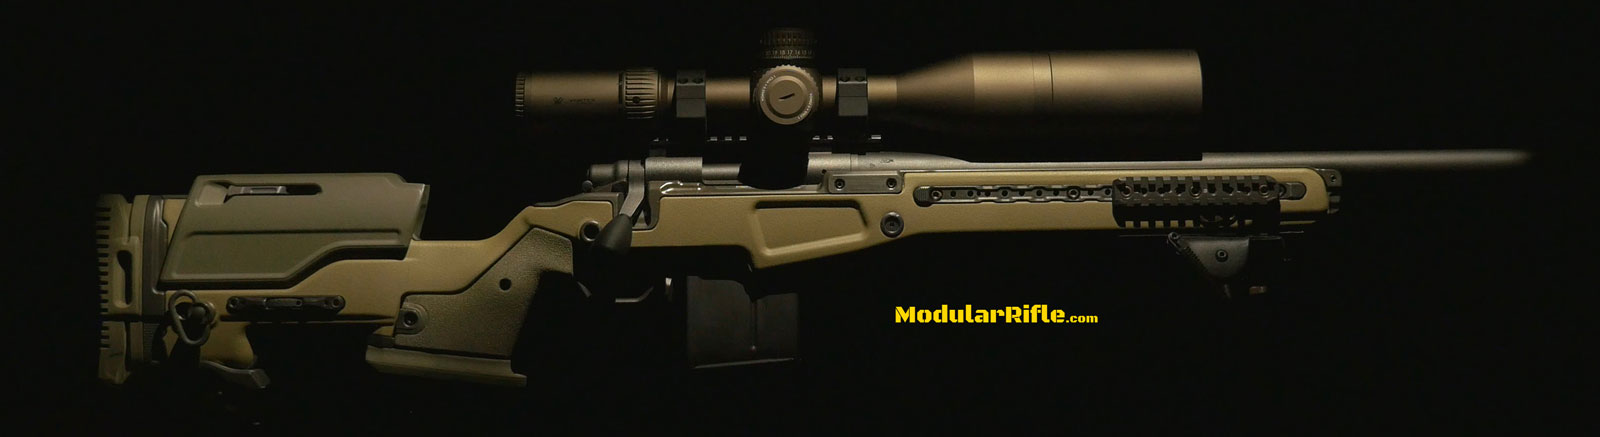 Picture of a completed 6.5 Creedmoor Long Range Sniper Rifle